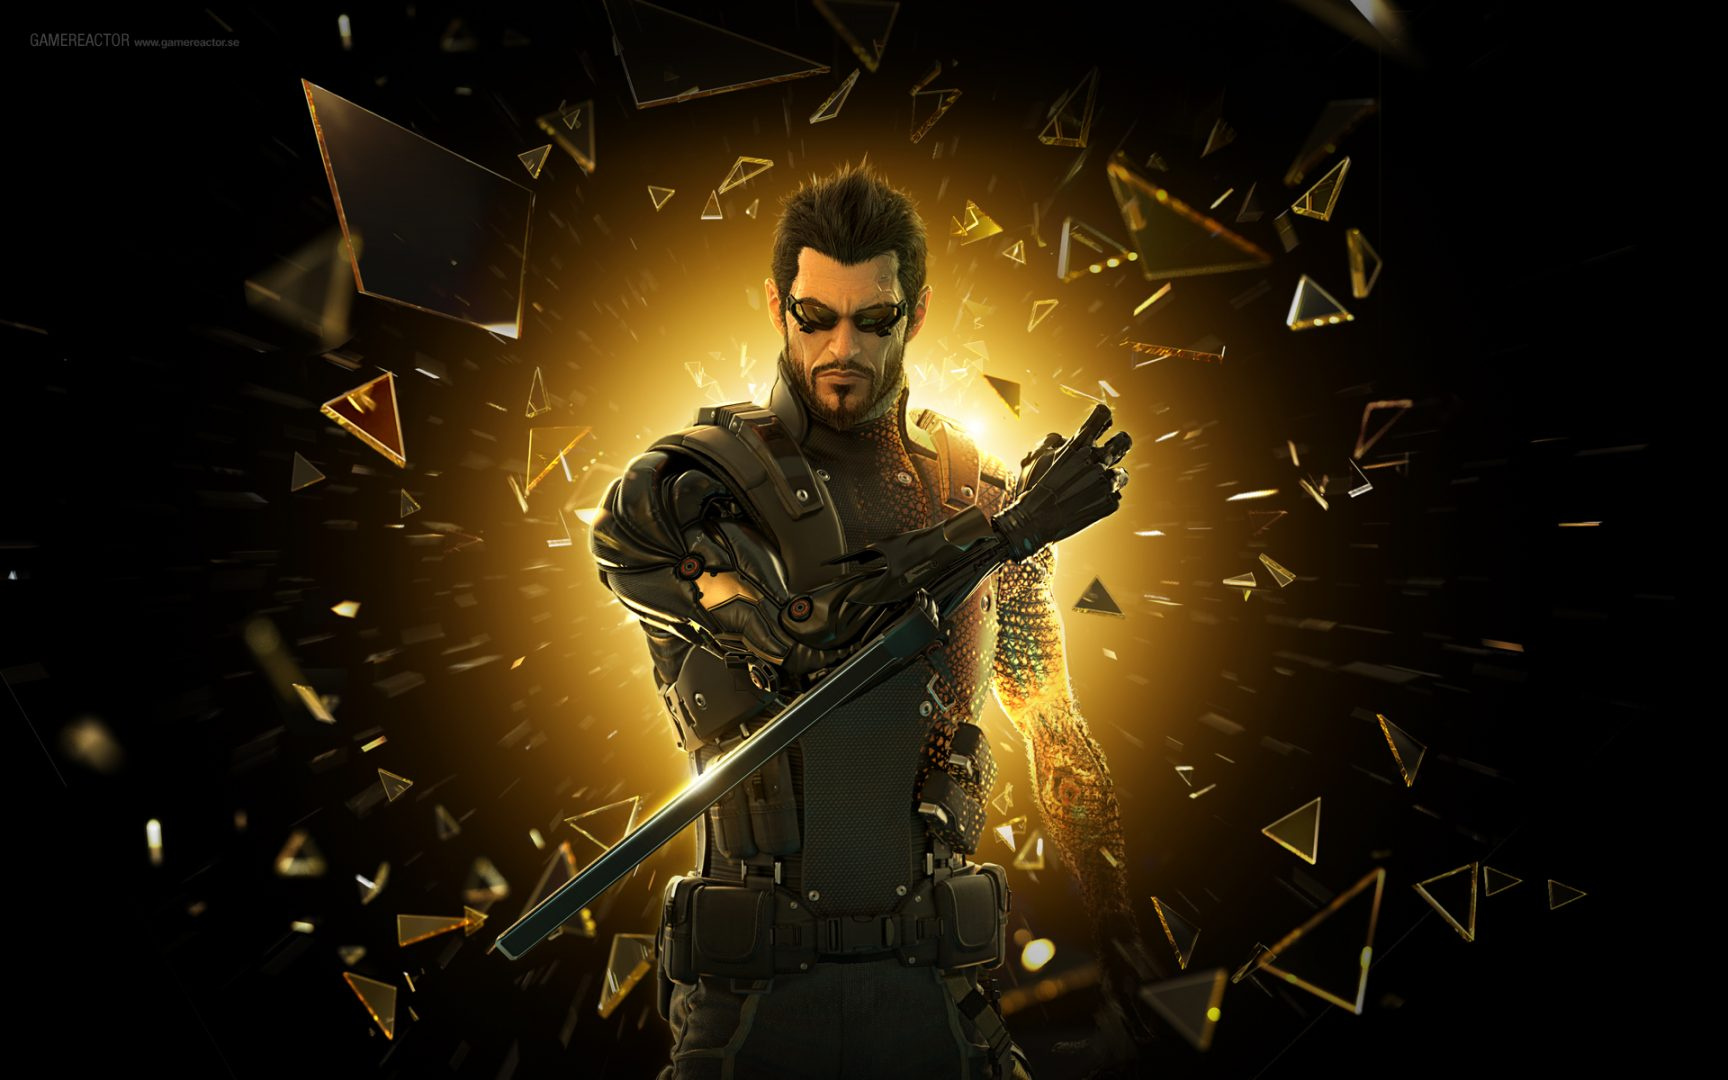 The Making of Deus Ex: Human Revolution is a Video